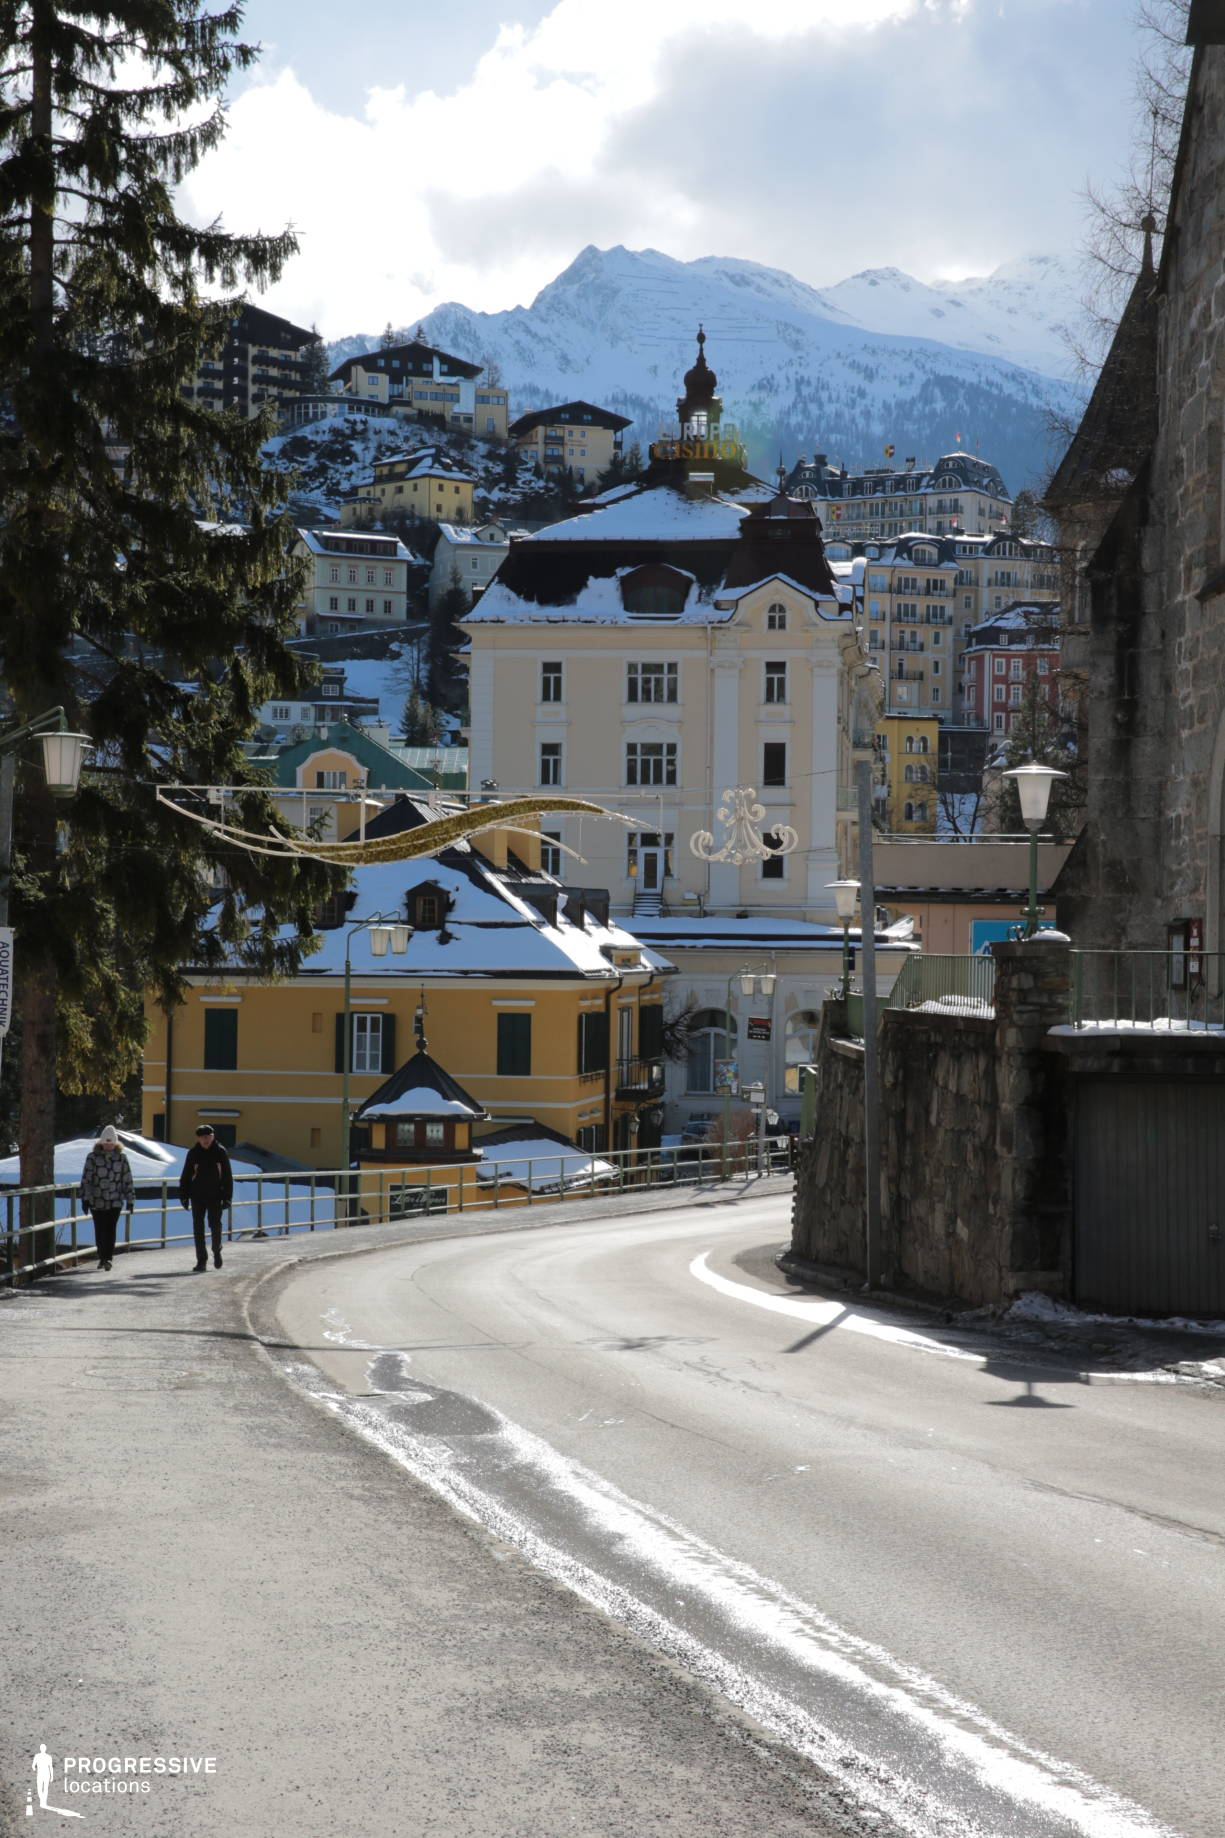 Locations in Austria: Old Town Road, Bad Gastein